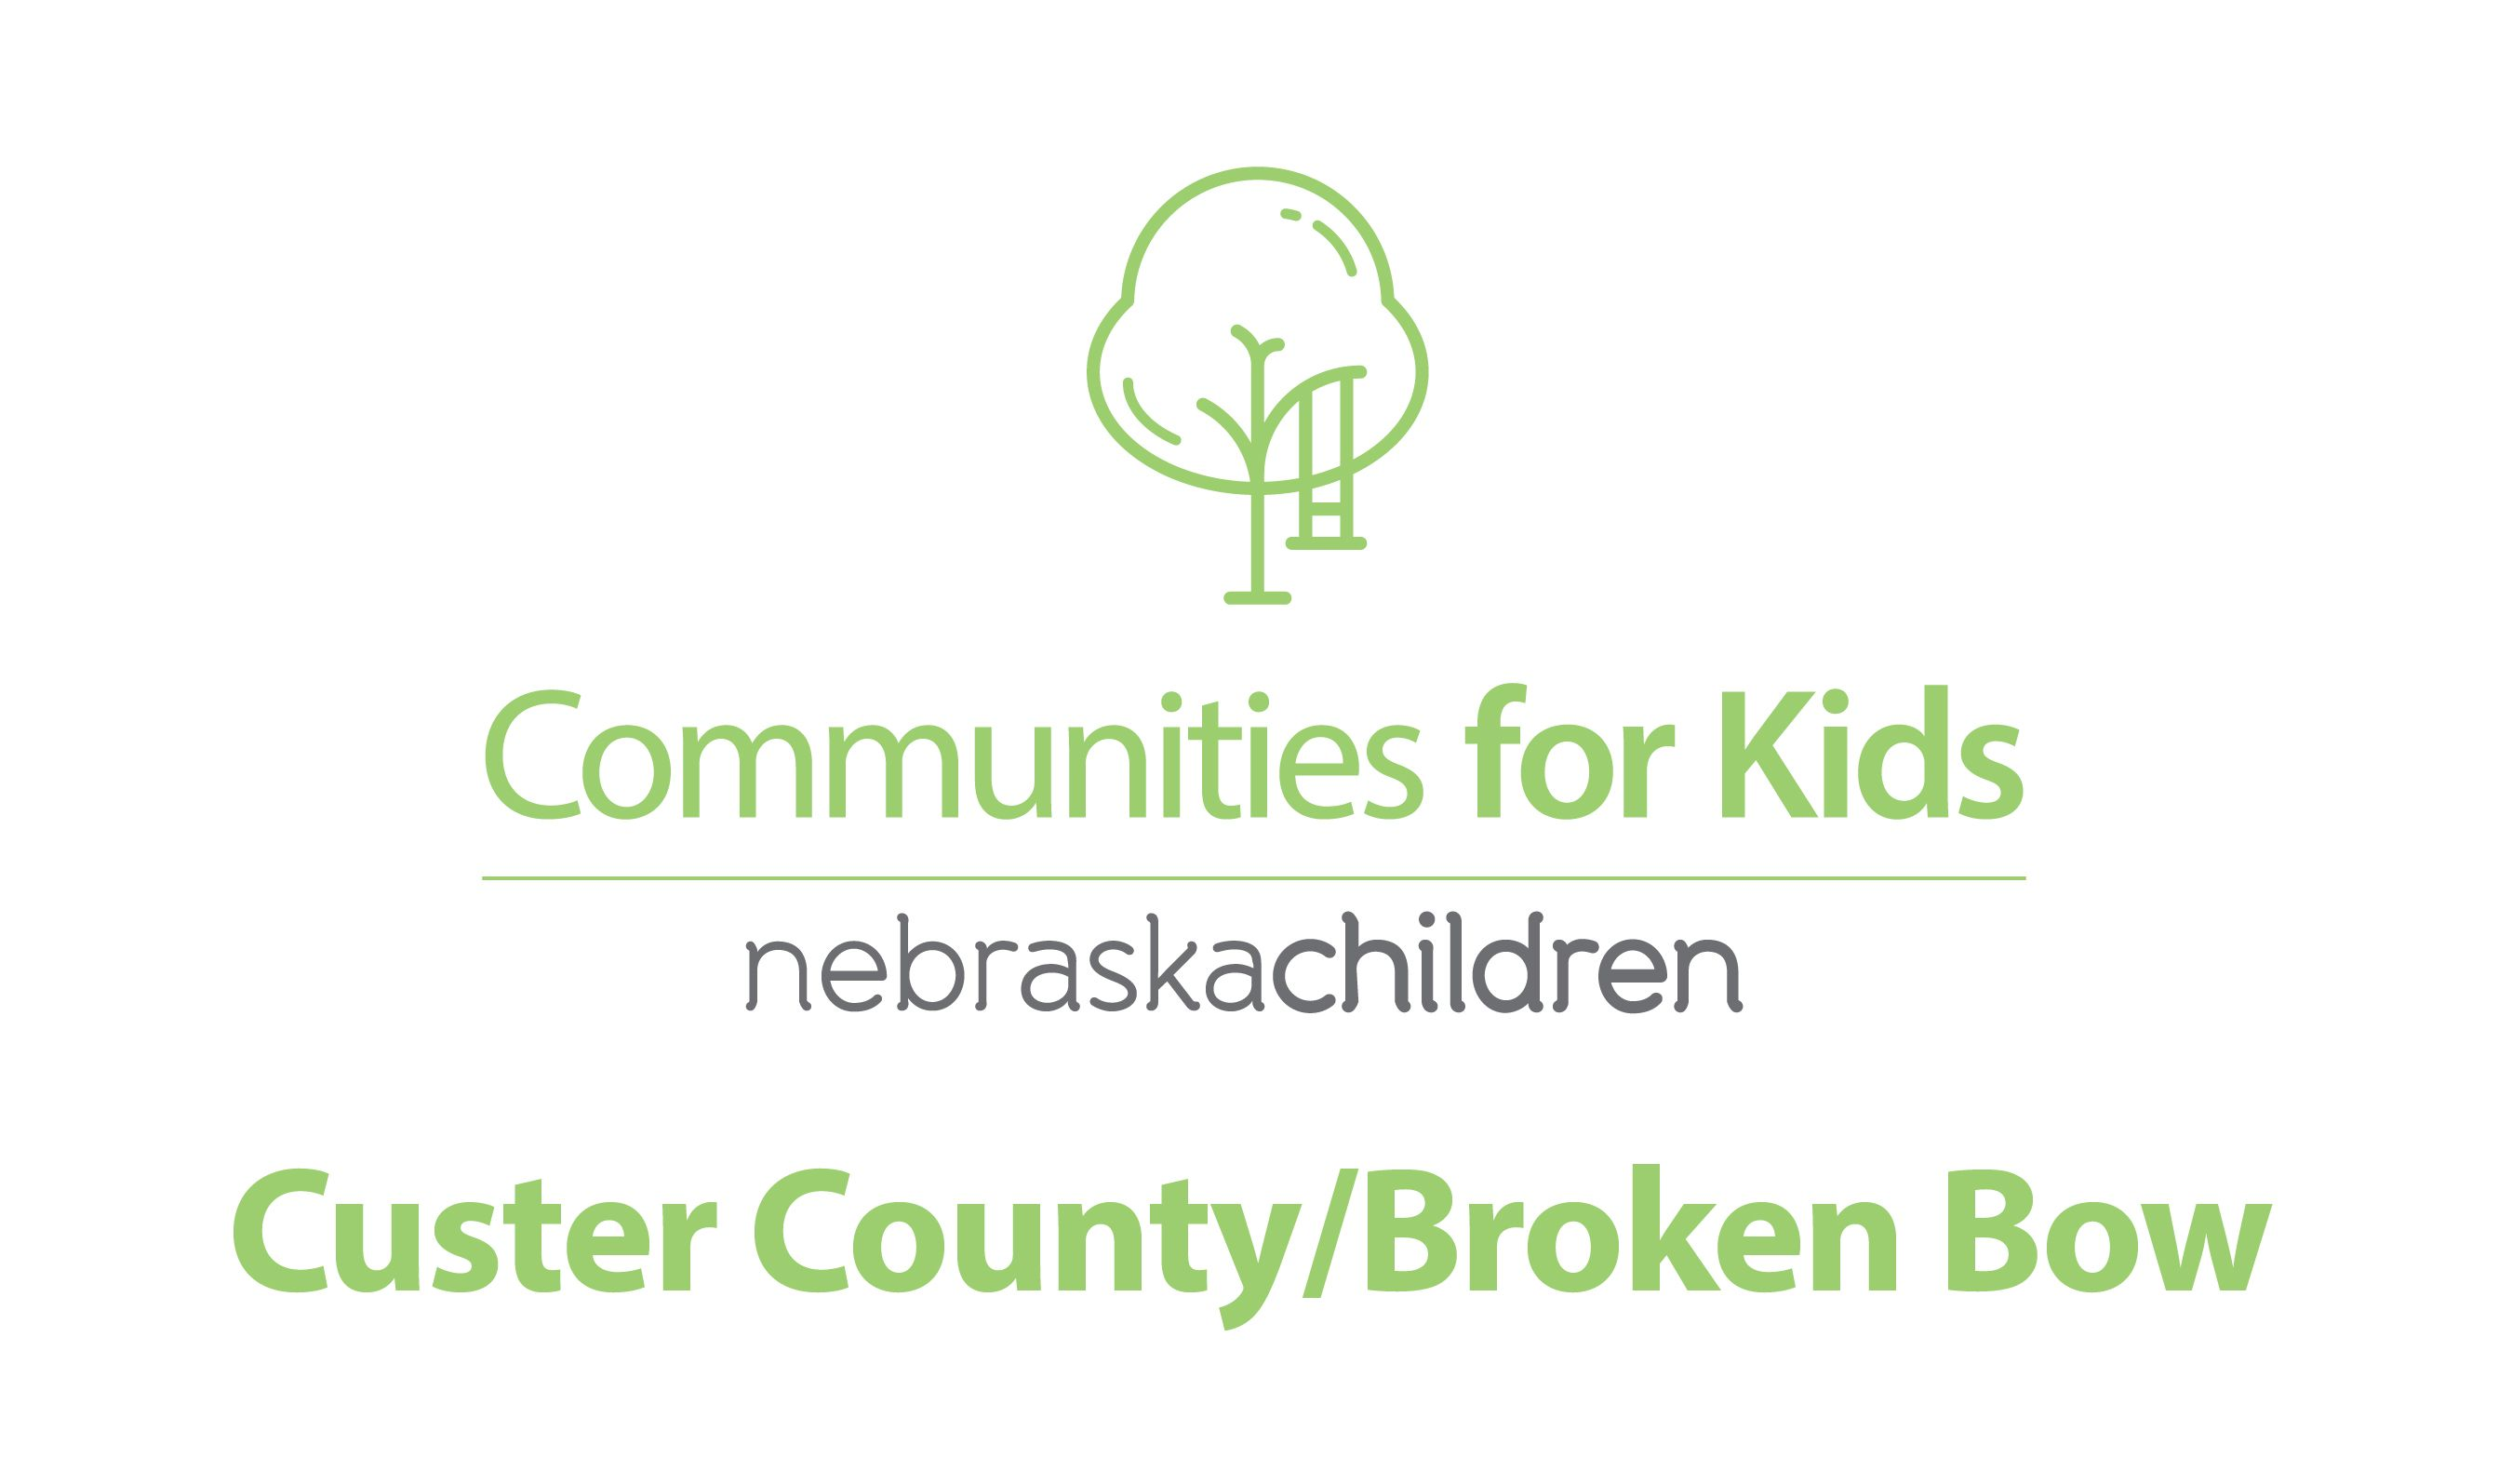 Custer County/Broken Bow C4K/C4K+ Community Work Plan